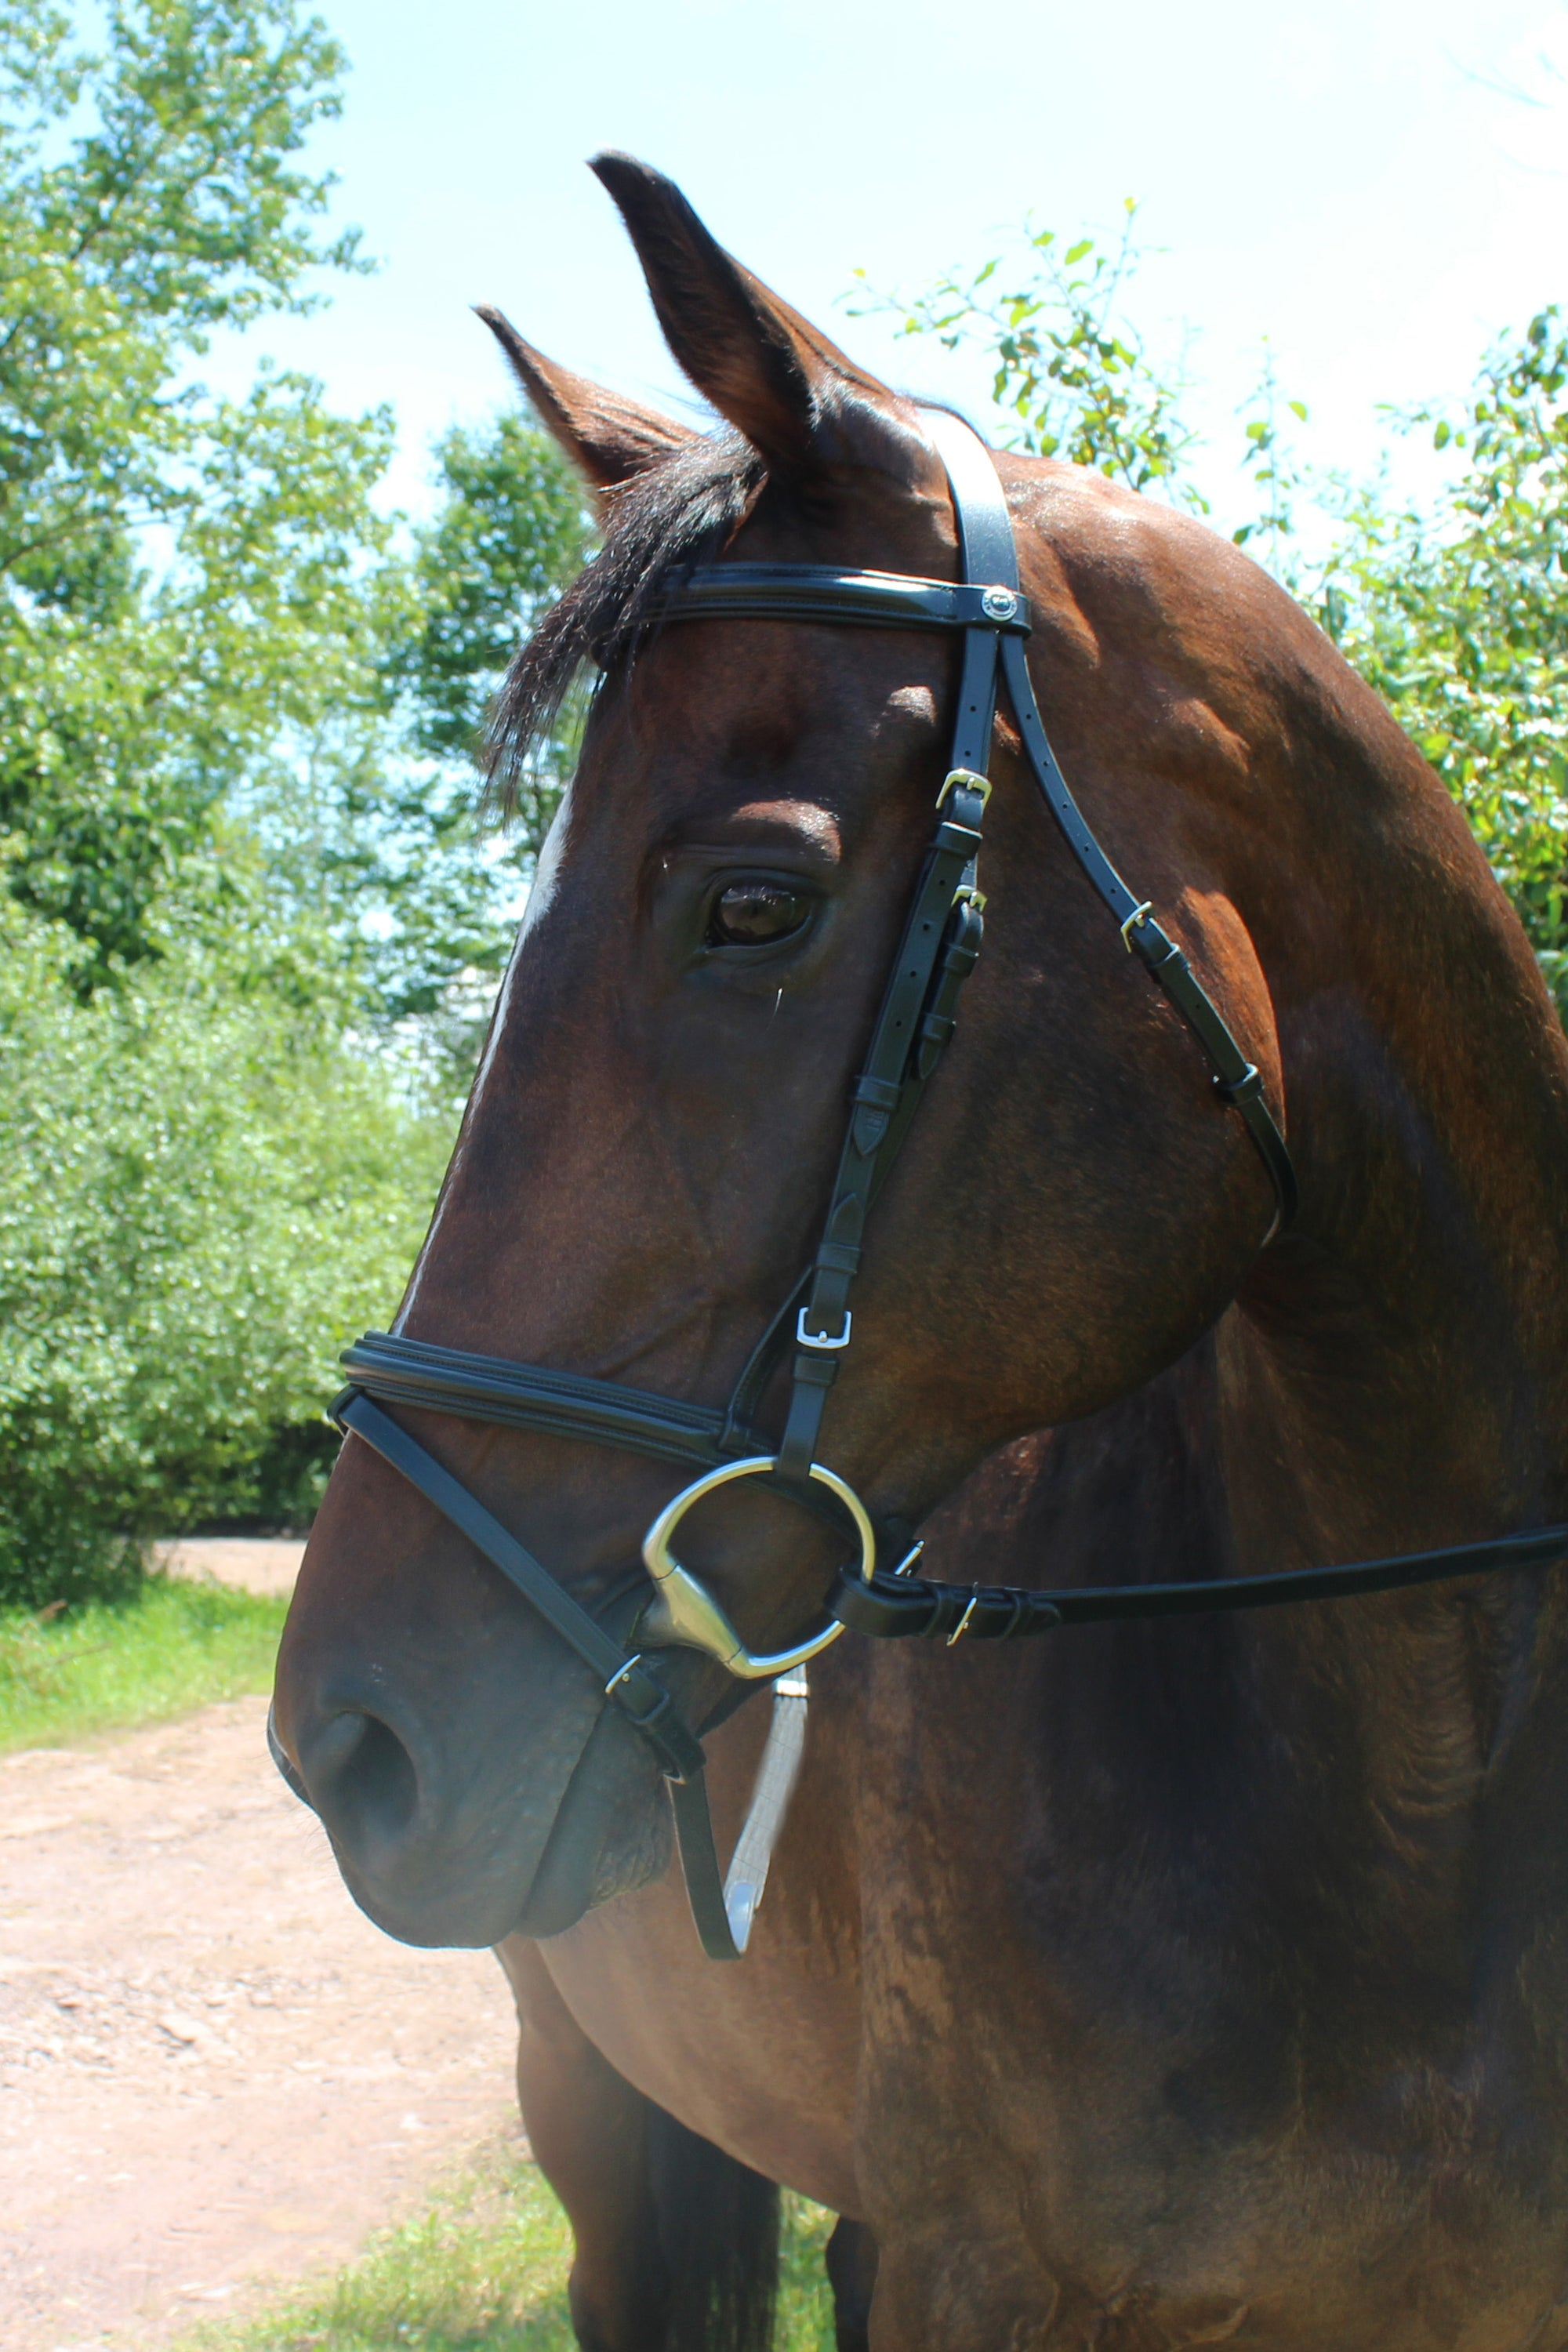 Henri de Rivel Pro Padded Dressage Bridle with Flash and Web Reins